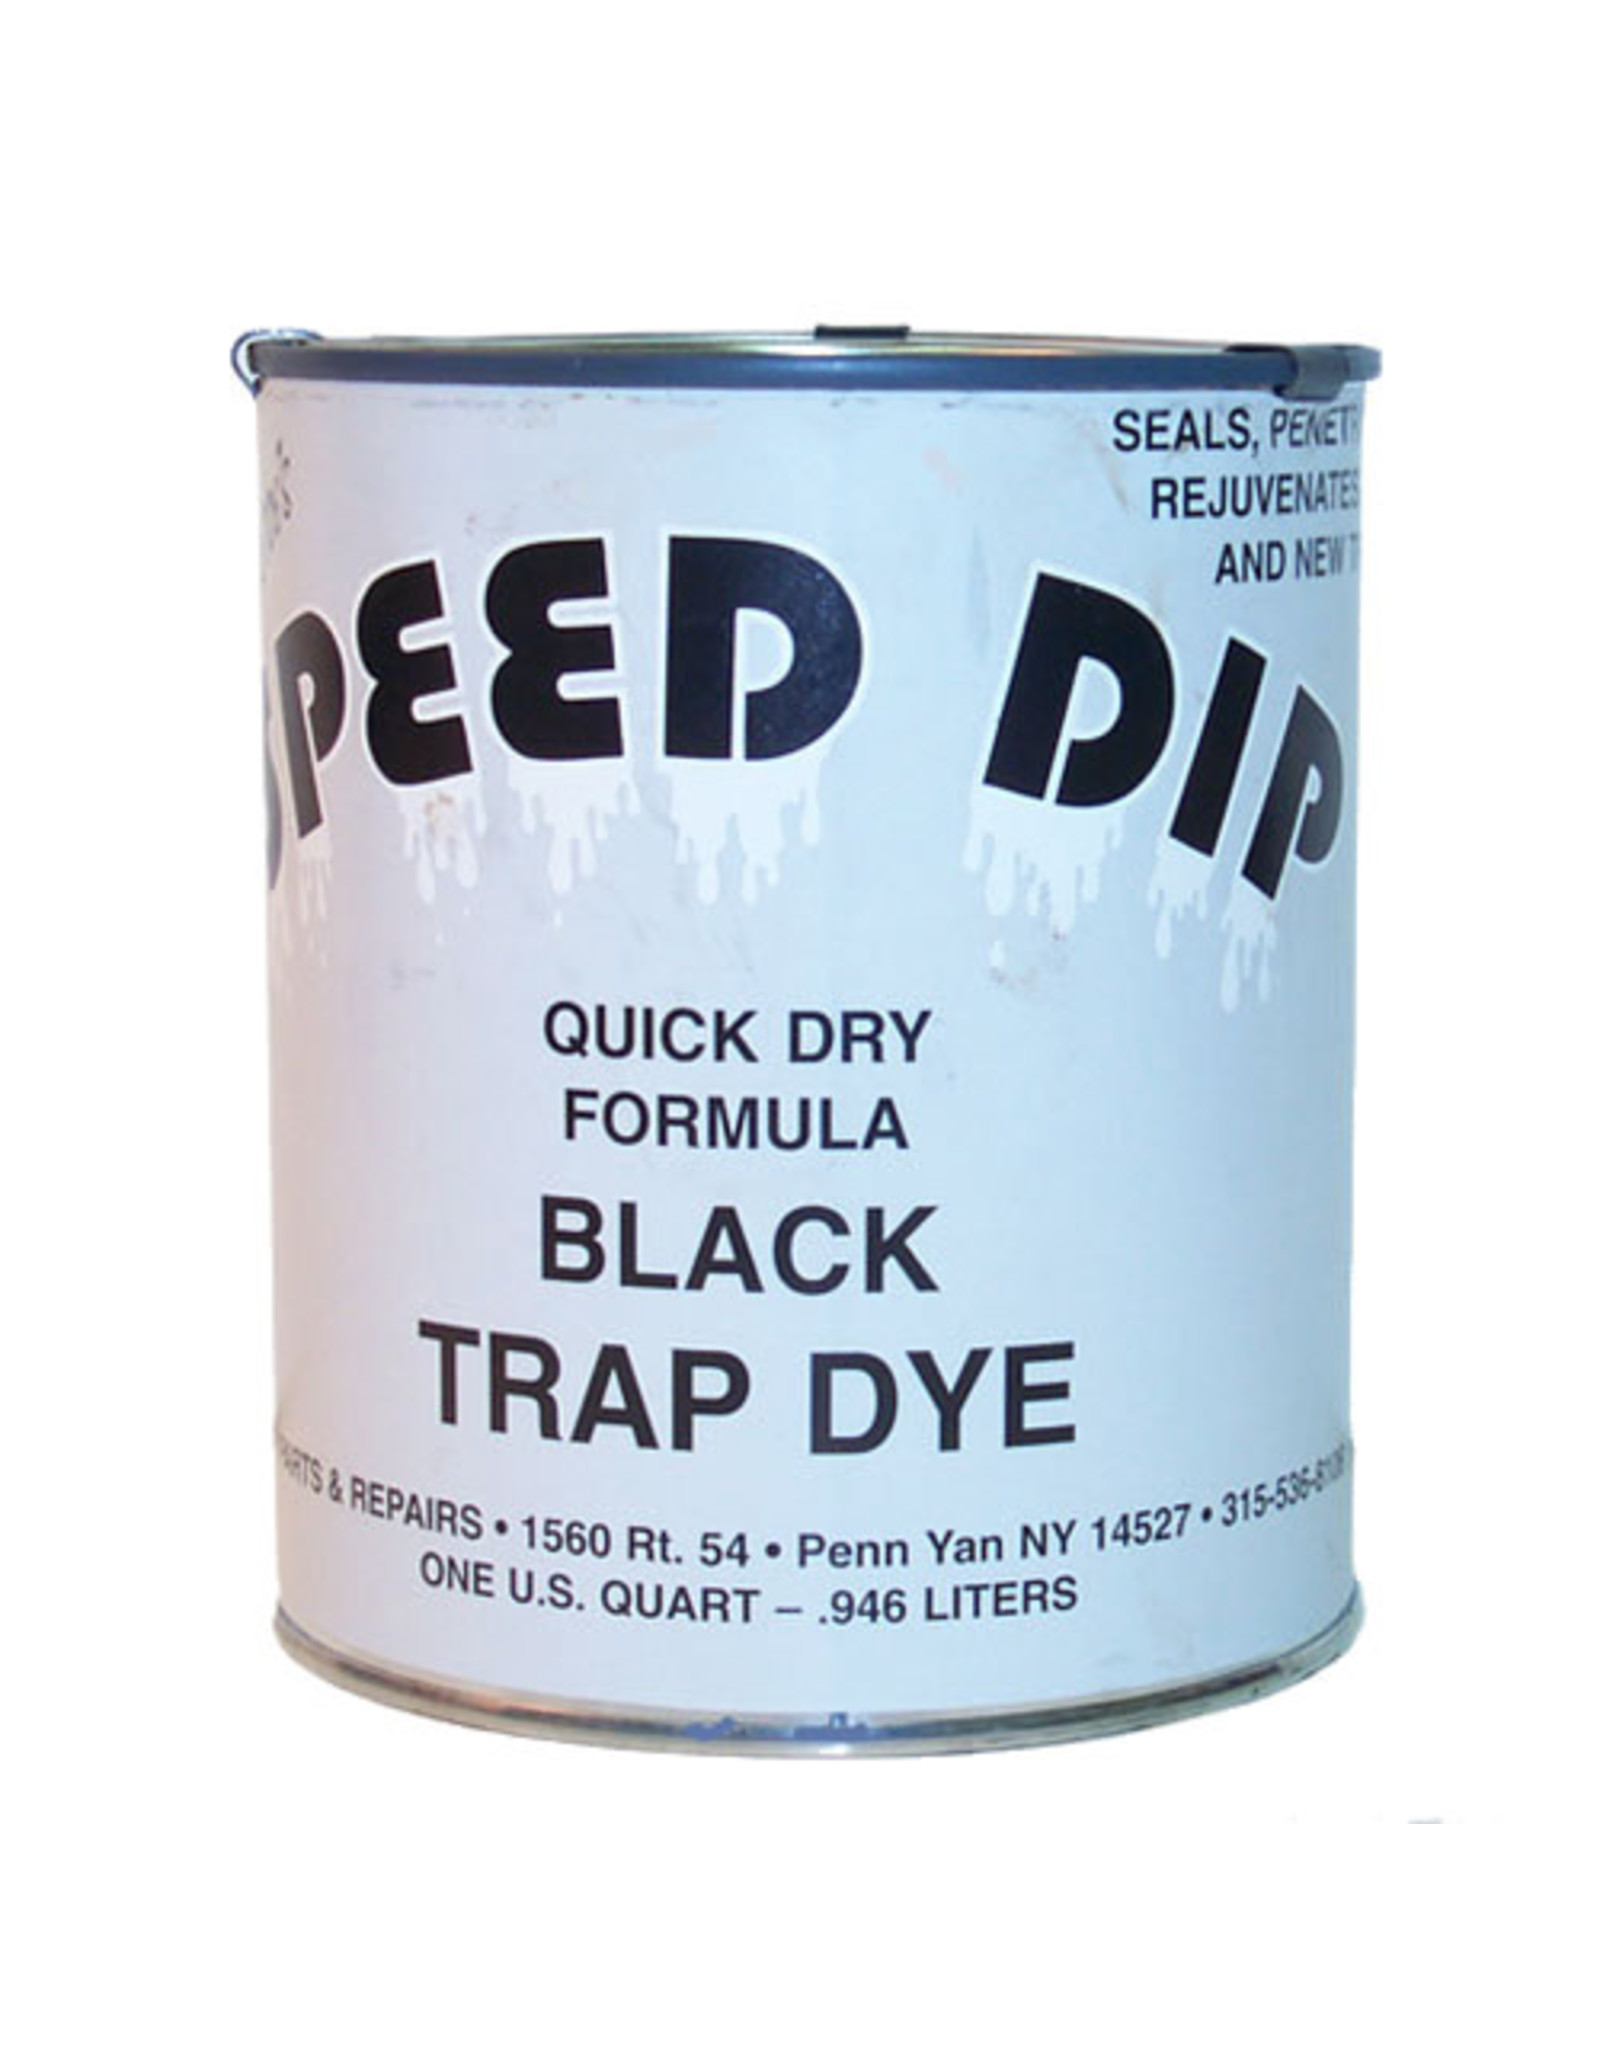 Andy Stoe's Andy Stoe's Speed dip Quick Dry Black Trap Dye